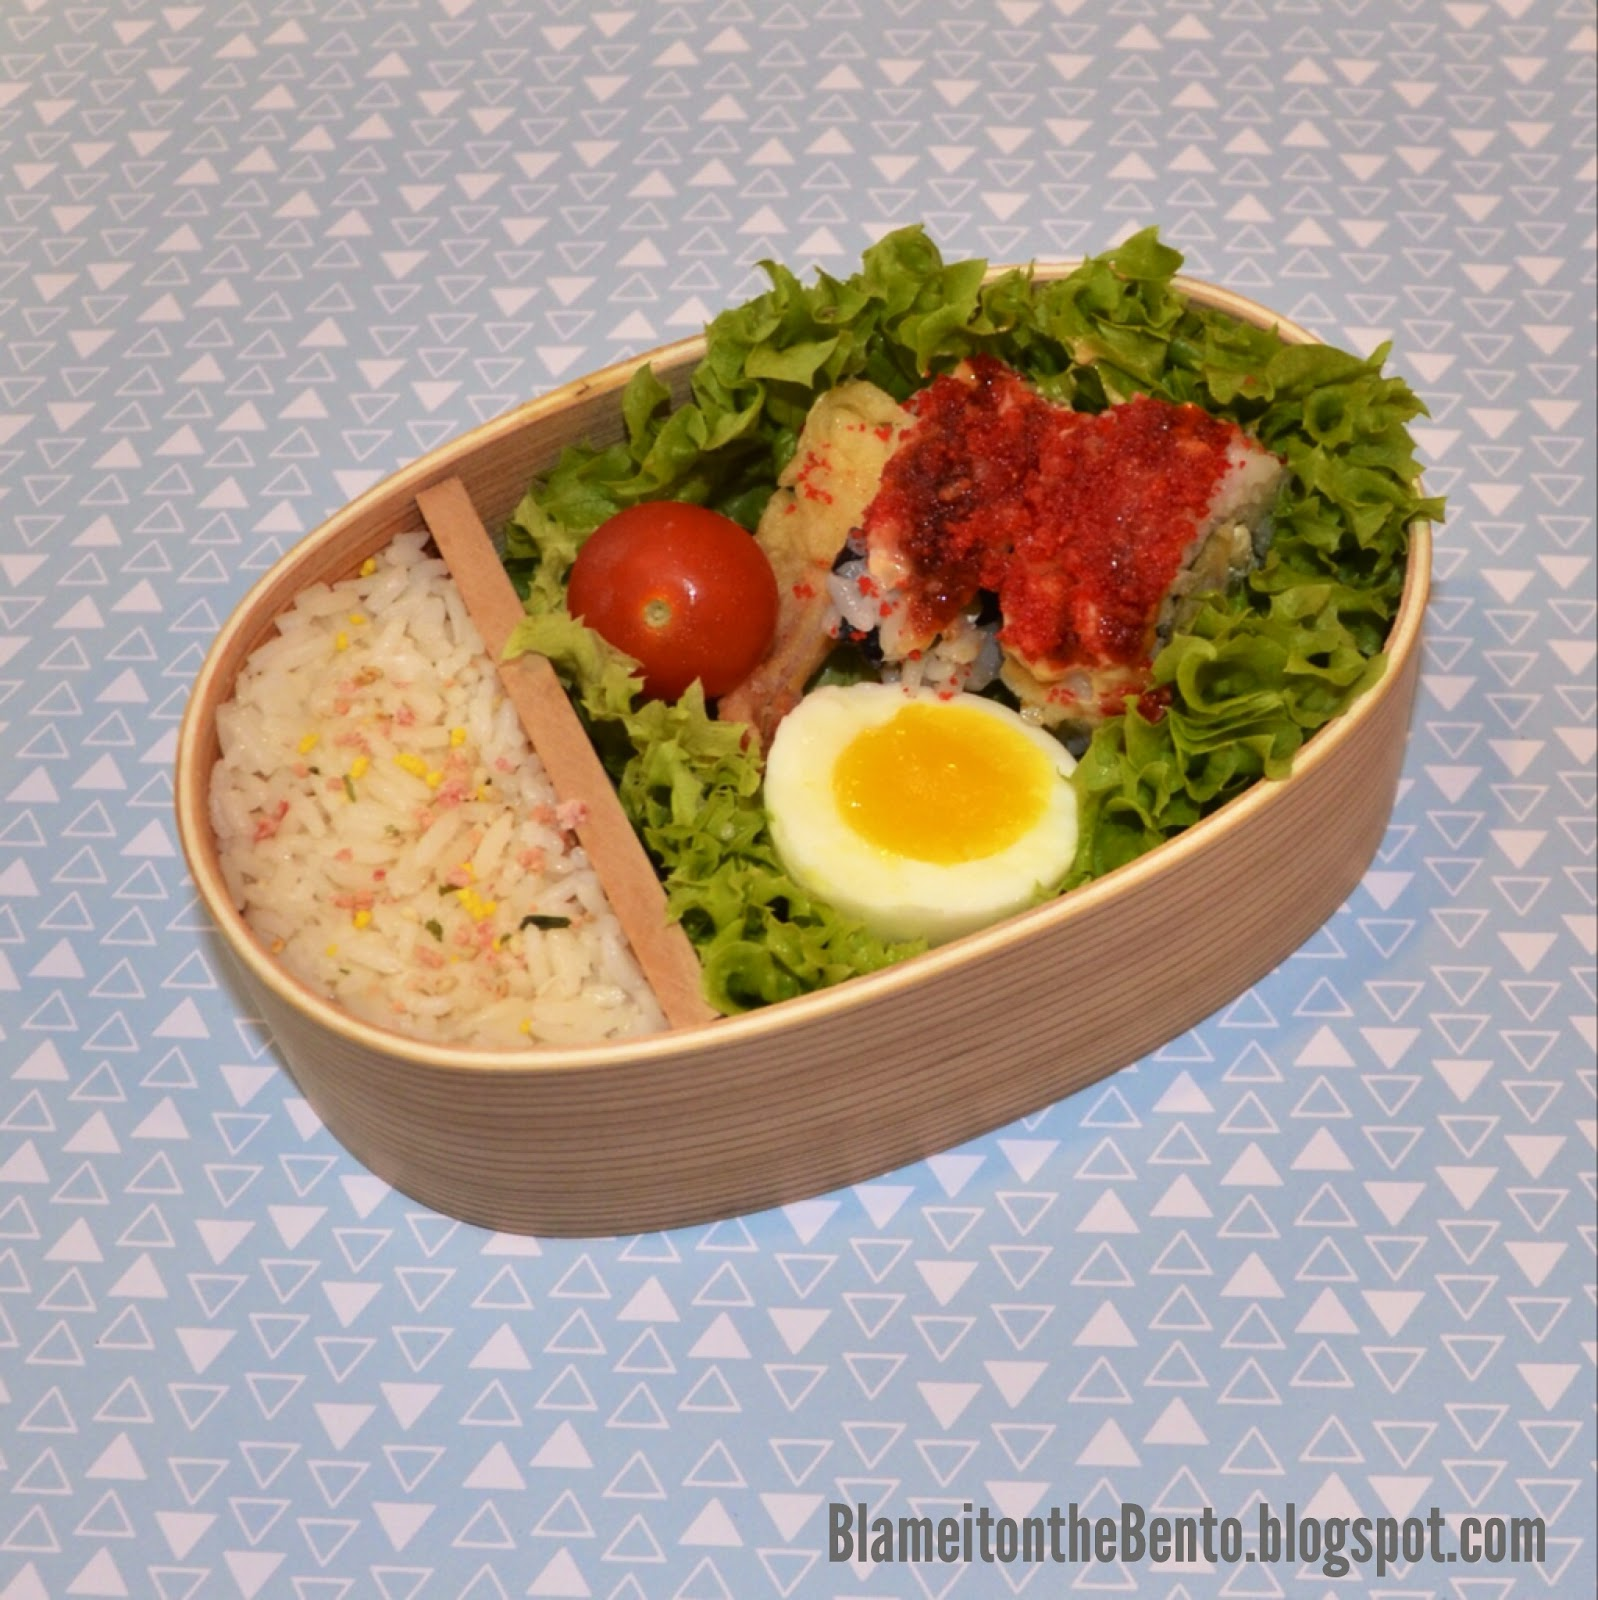 Traditional magewappa bento box